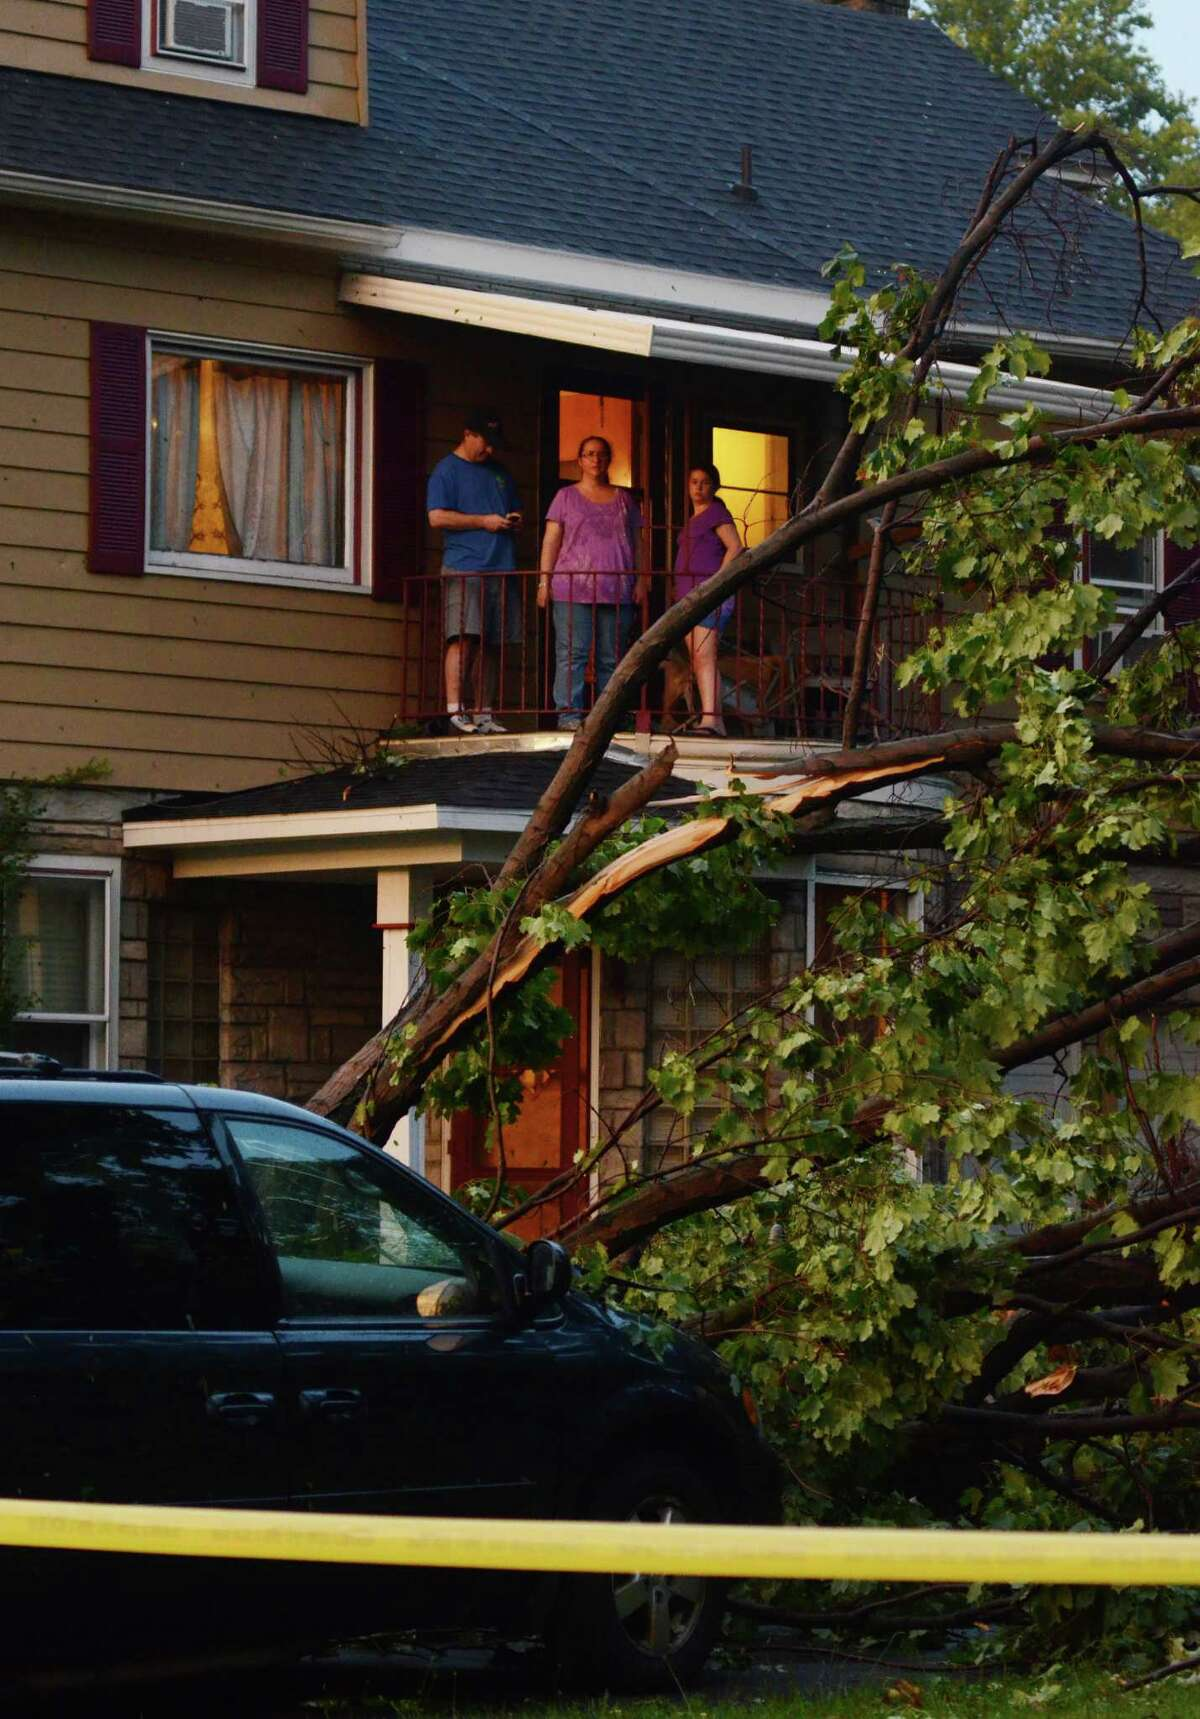 A family surveys the damage surrounding their property in Elmira N.Y., after a possible tornado struck the area, Thursday, July 26, 2012. The storm brought down trees and power lines, tore roofs off some buildings and caused motor vehicle accidents. Utilities report more than 20,000 customers without power in the area.